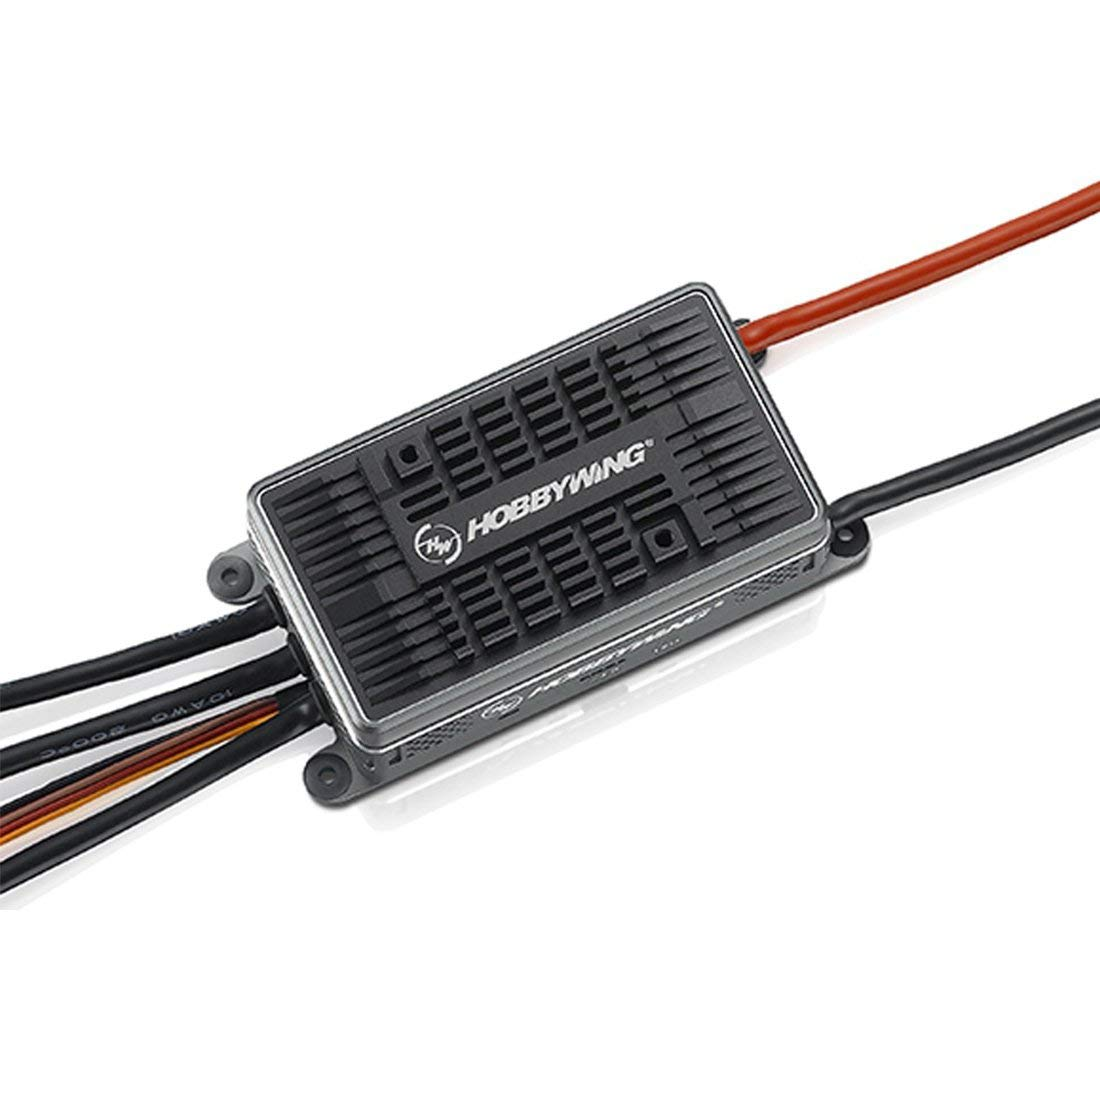 Hobbywing Platinum HV 200A V4.1 30209101 SBEC 30209102 OPTO 6-14S Electronic Speed Control for RC Helicopter Airplane